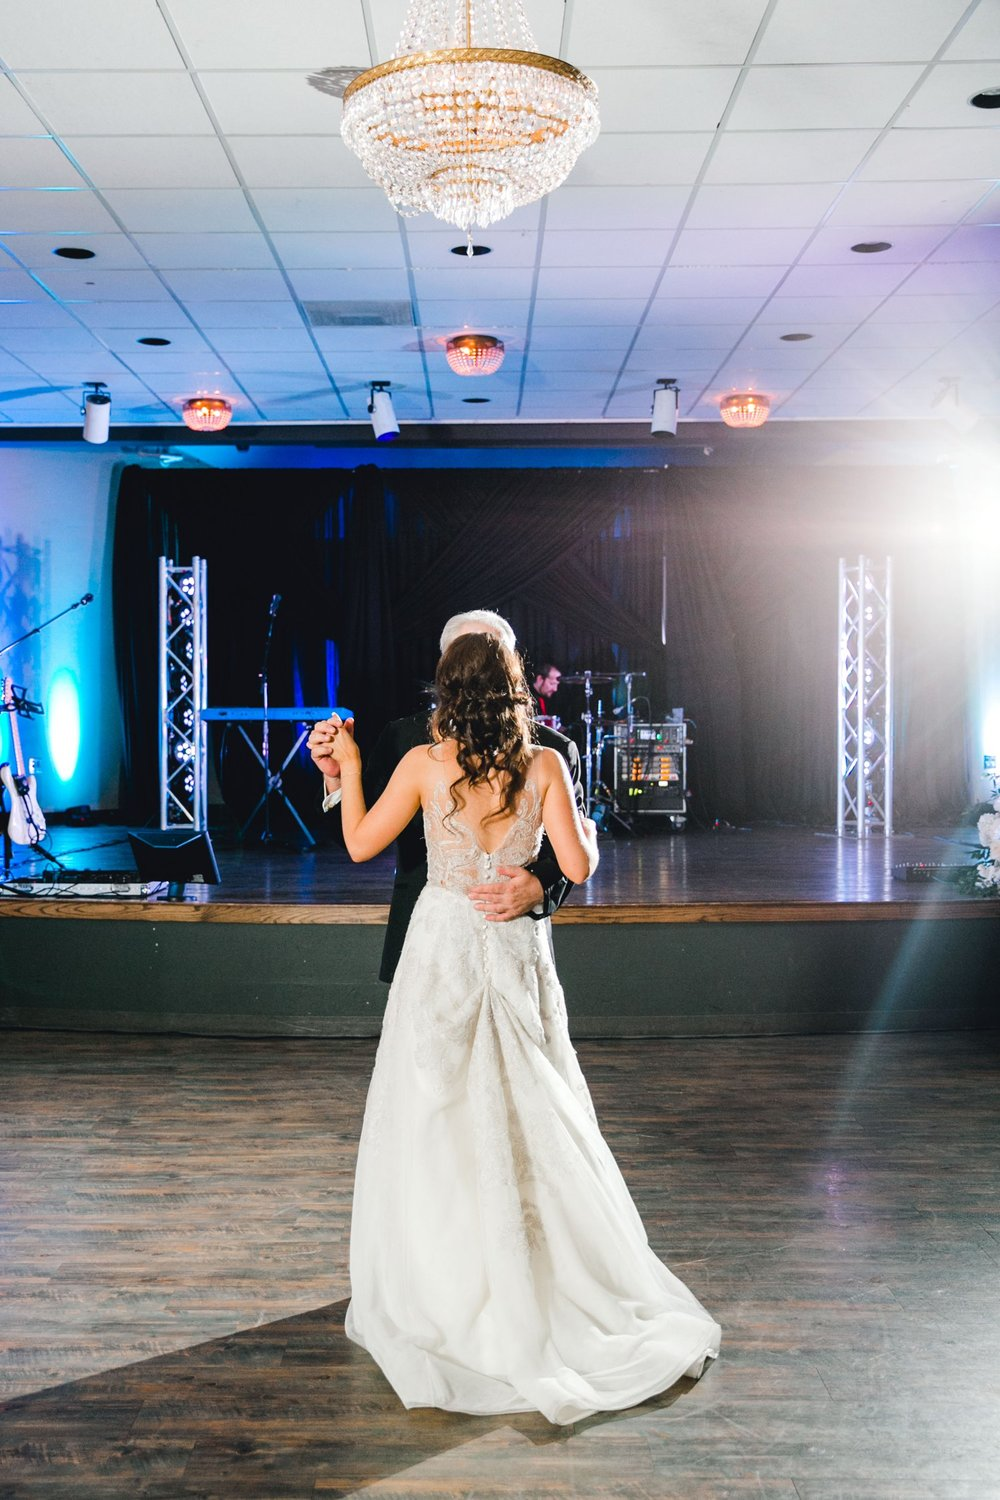 Hunter_and_Molly_Rawls_ALLEEJ_Lubbock_WEDDING_Legacy_Event_Center_0172.jpg